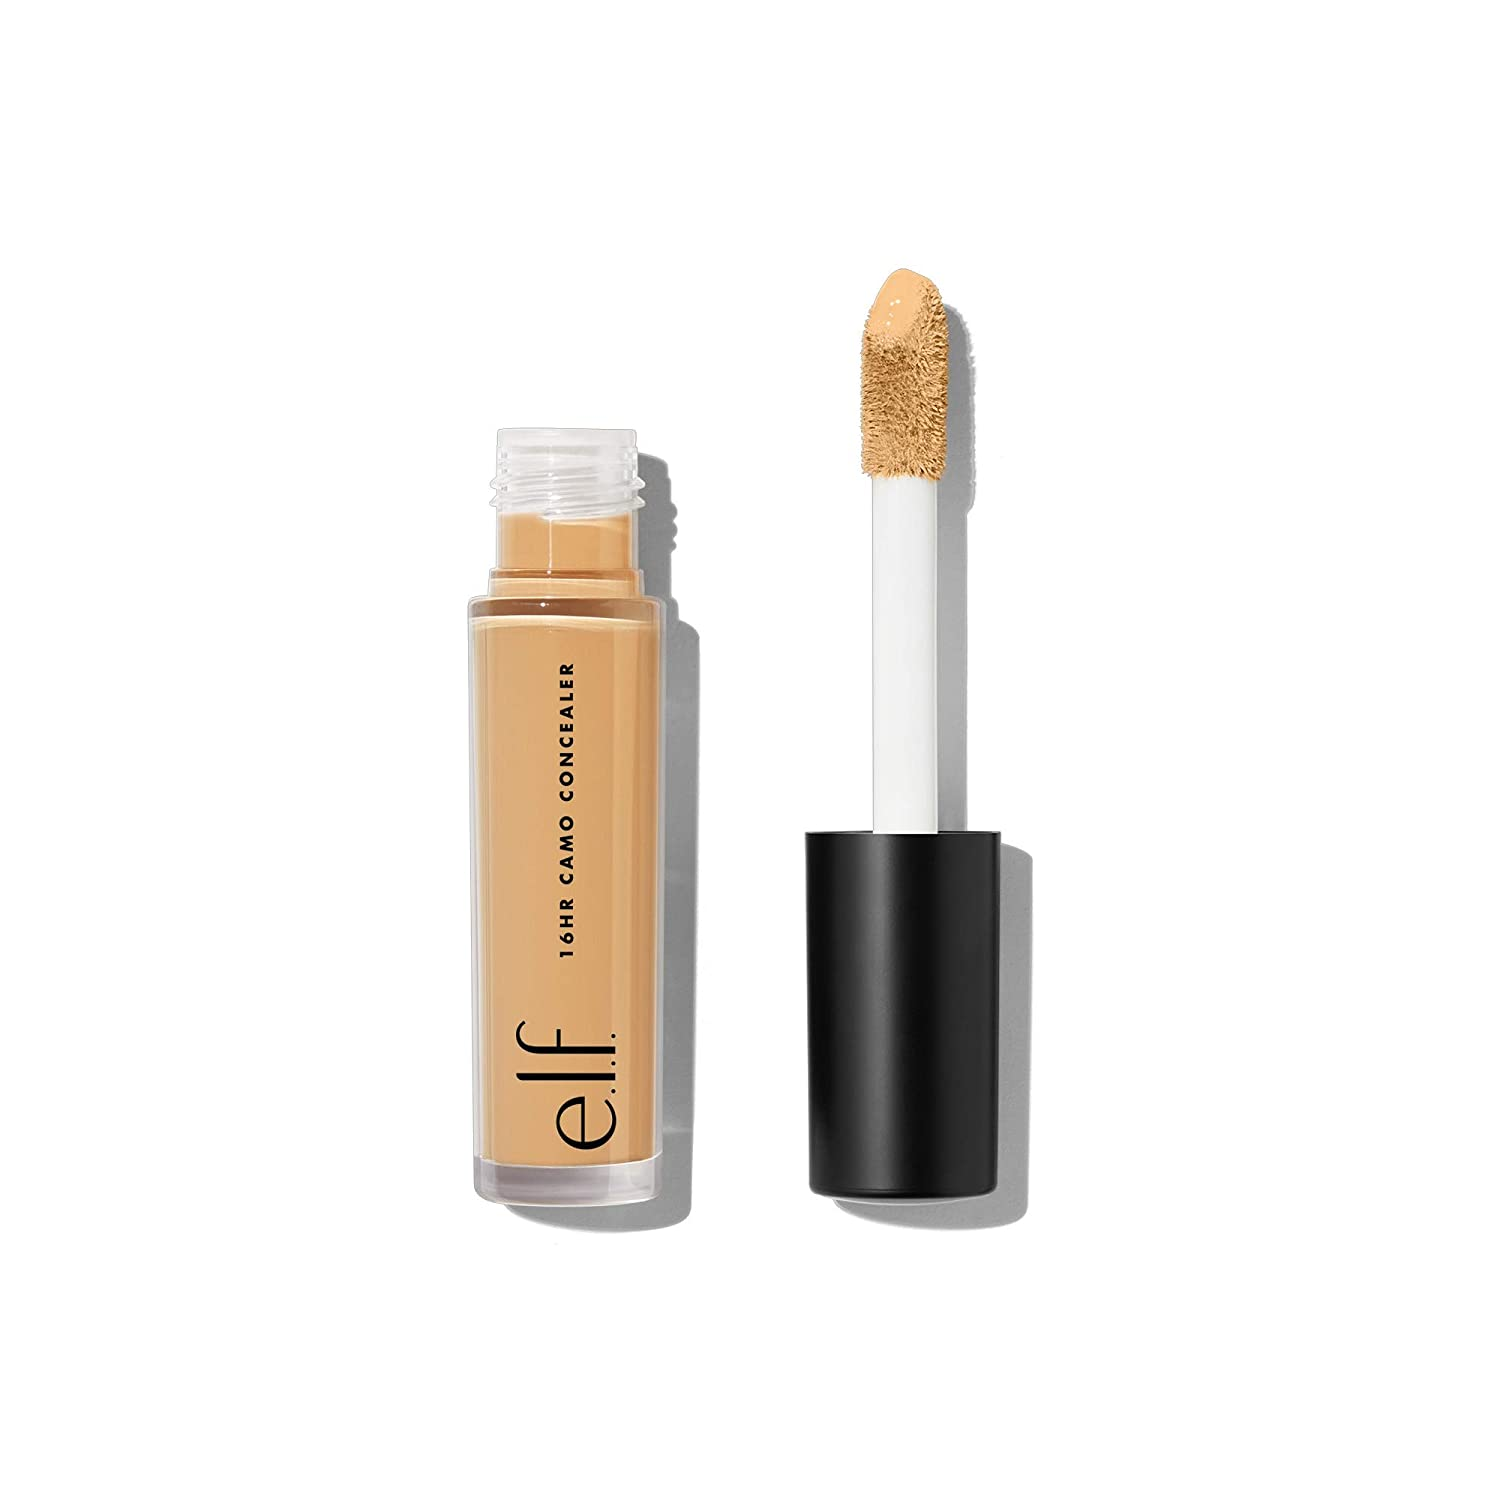 e.l.f., 16HR Camo Concealer, Full Coverage, Lightweight, Conceals, Corrects, Contours, Highlights, Medium Sand, Dries Matte, 6 Shades + 27 Colors, Ideal for All Skin Types, 0.203 Fl Oz